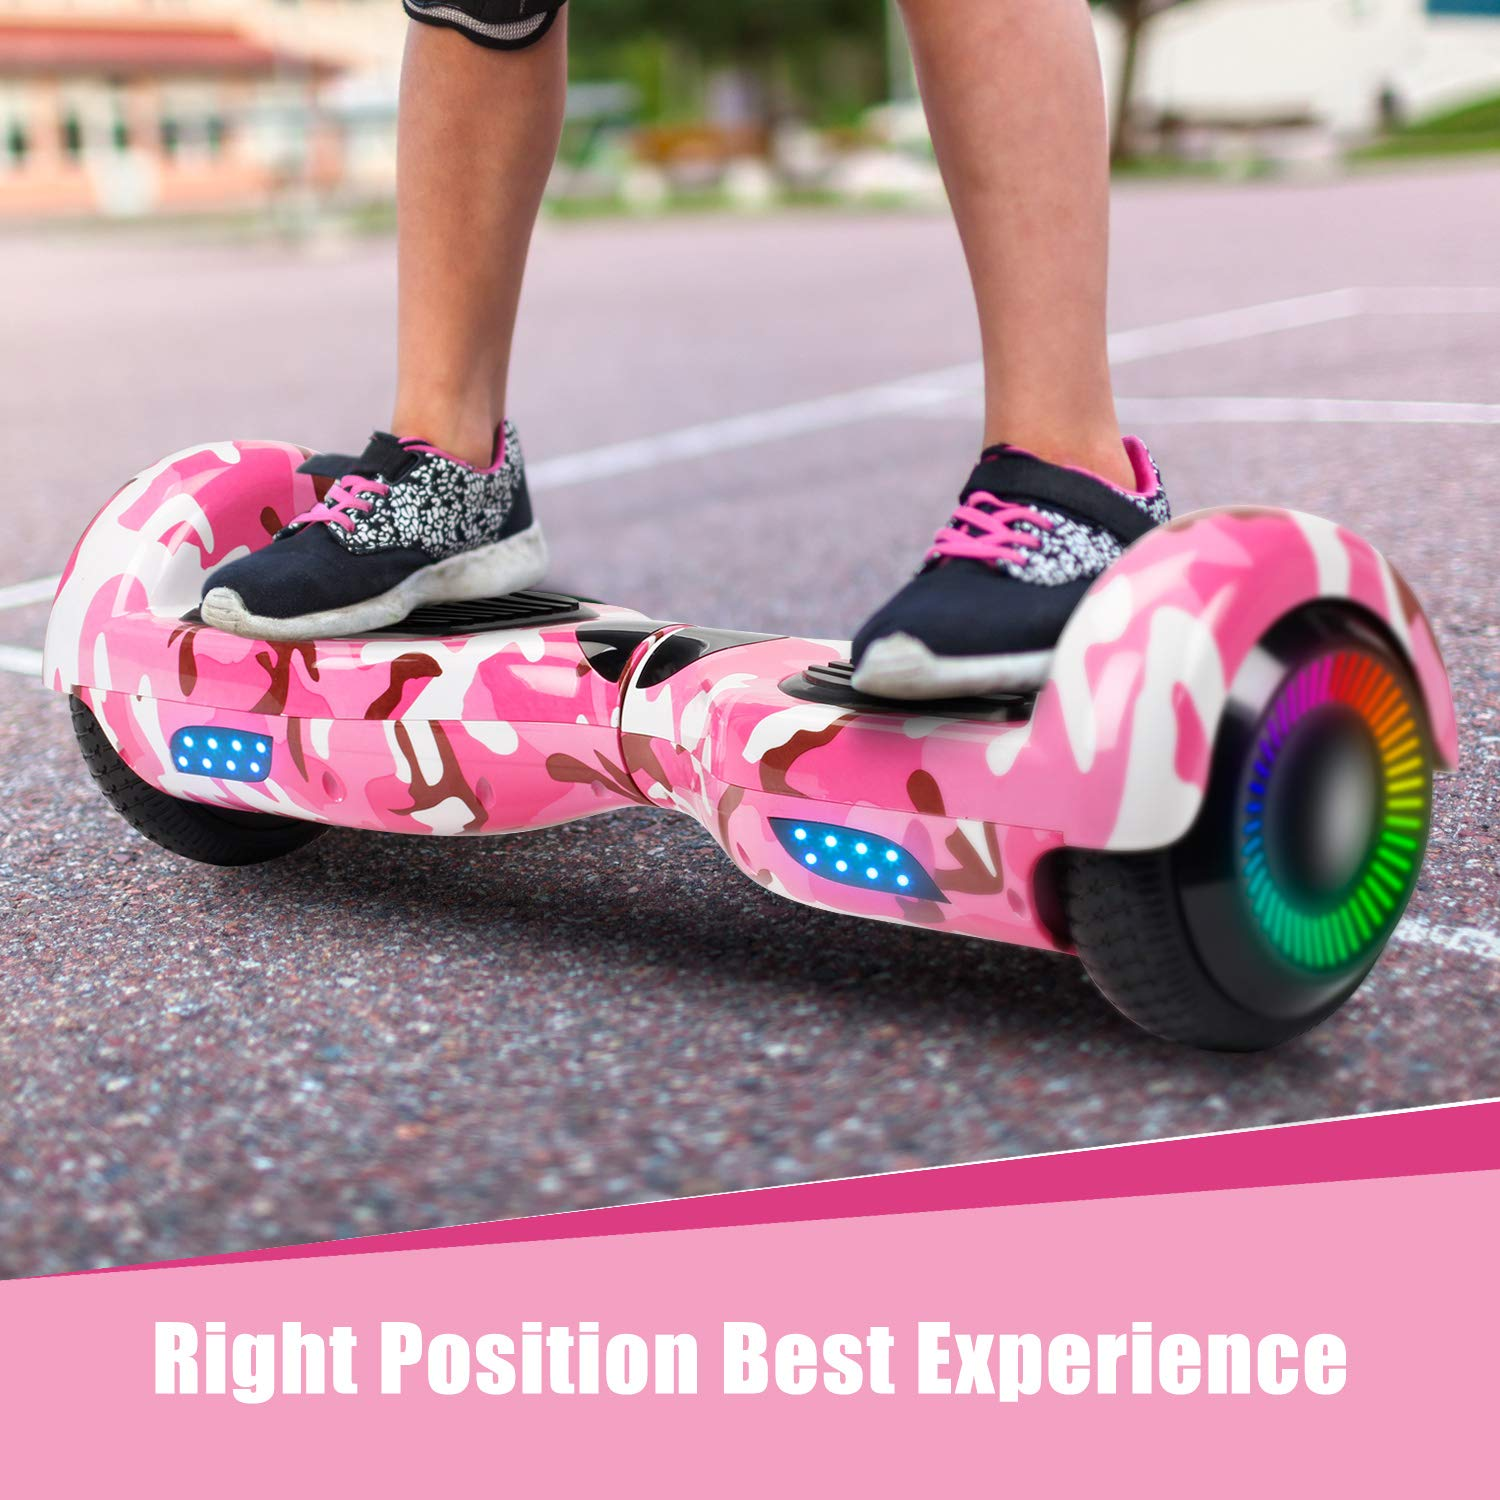 SWEETBUY Hoverboard Two-Wheel Self Balancing Electric Scooter UL 2272 Certified,6.5 inch Self Balancing Scooter with Carry Bag(Blue) by SWEETBUY (Image #7)